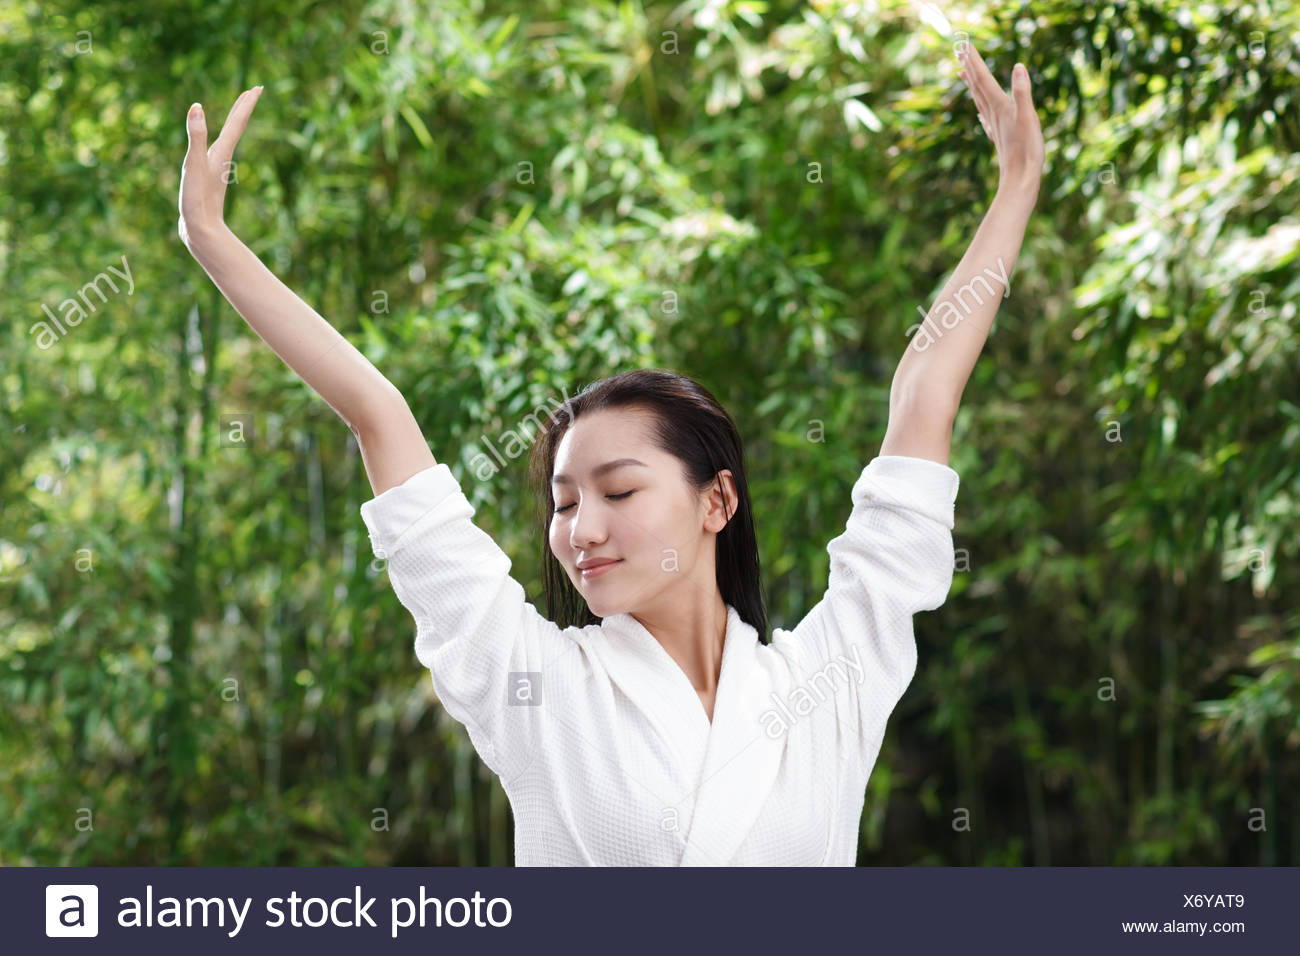 Young women for SPA stretched his arms in outdoor - Stock Image